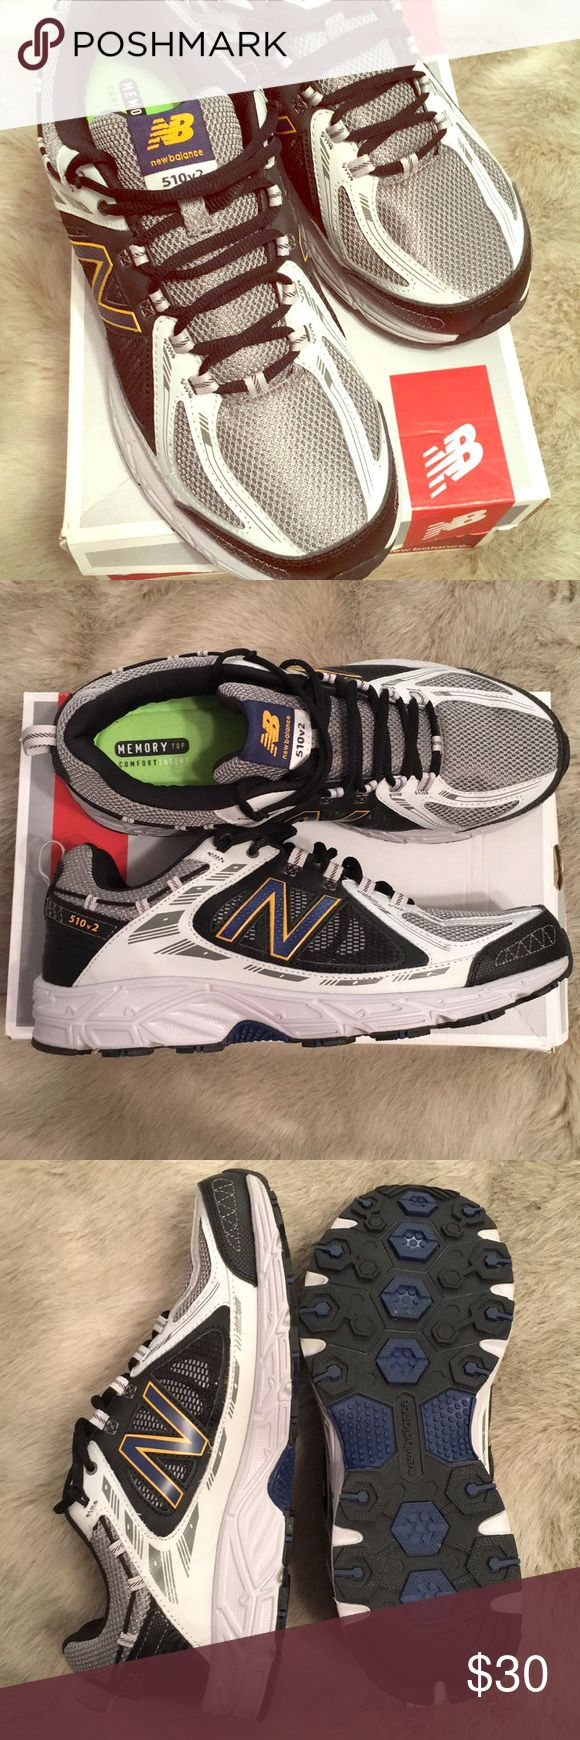 New Balance Trail Runners Size 11.5 New Balance trail runners in the original box. Sneakers have gray and black color scheme with navy blue 'N' outlined in yellow. Insoles are neon green 'memory top comfort inserts'. Never worn. Smoke/pet free home. Men's size 11.5 New Balance Shoes Athletic Shoes